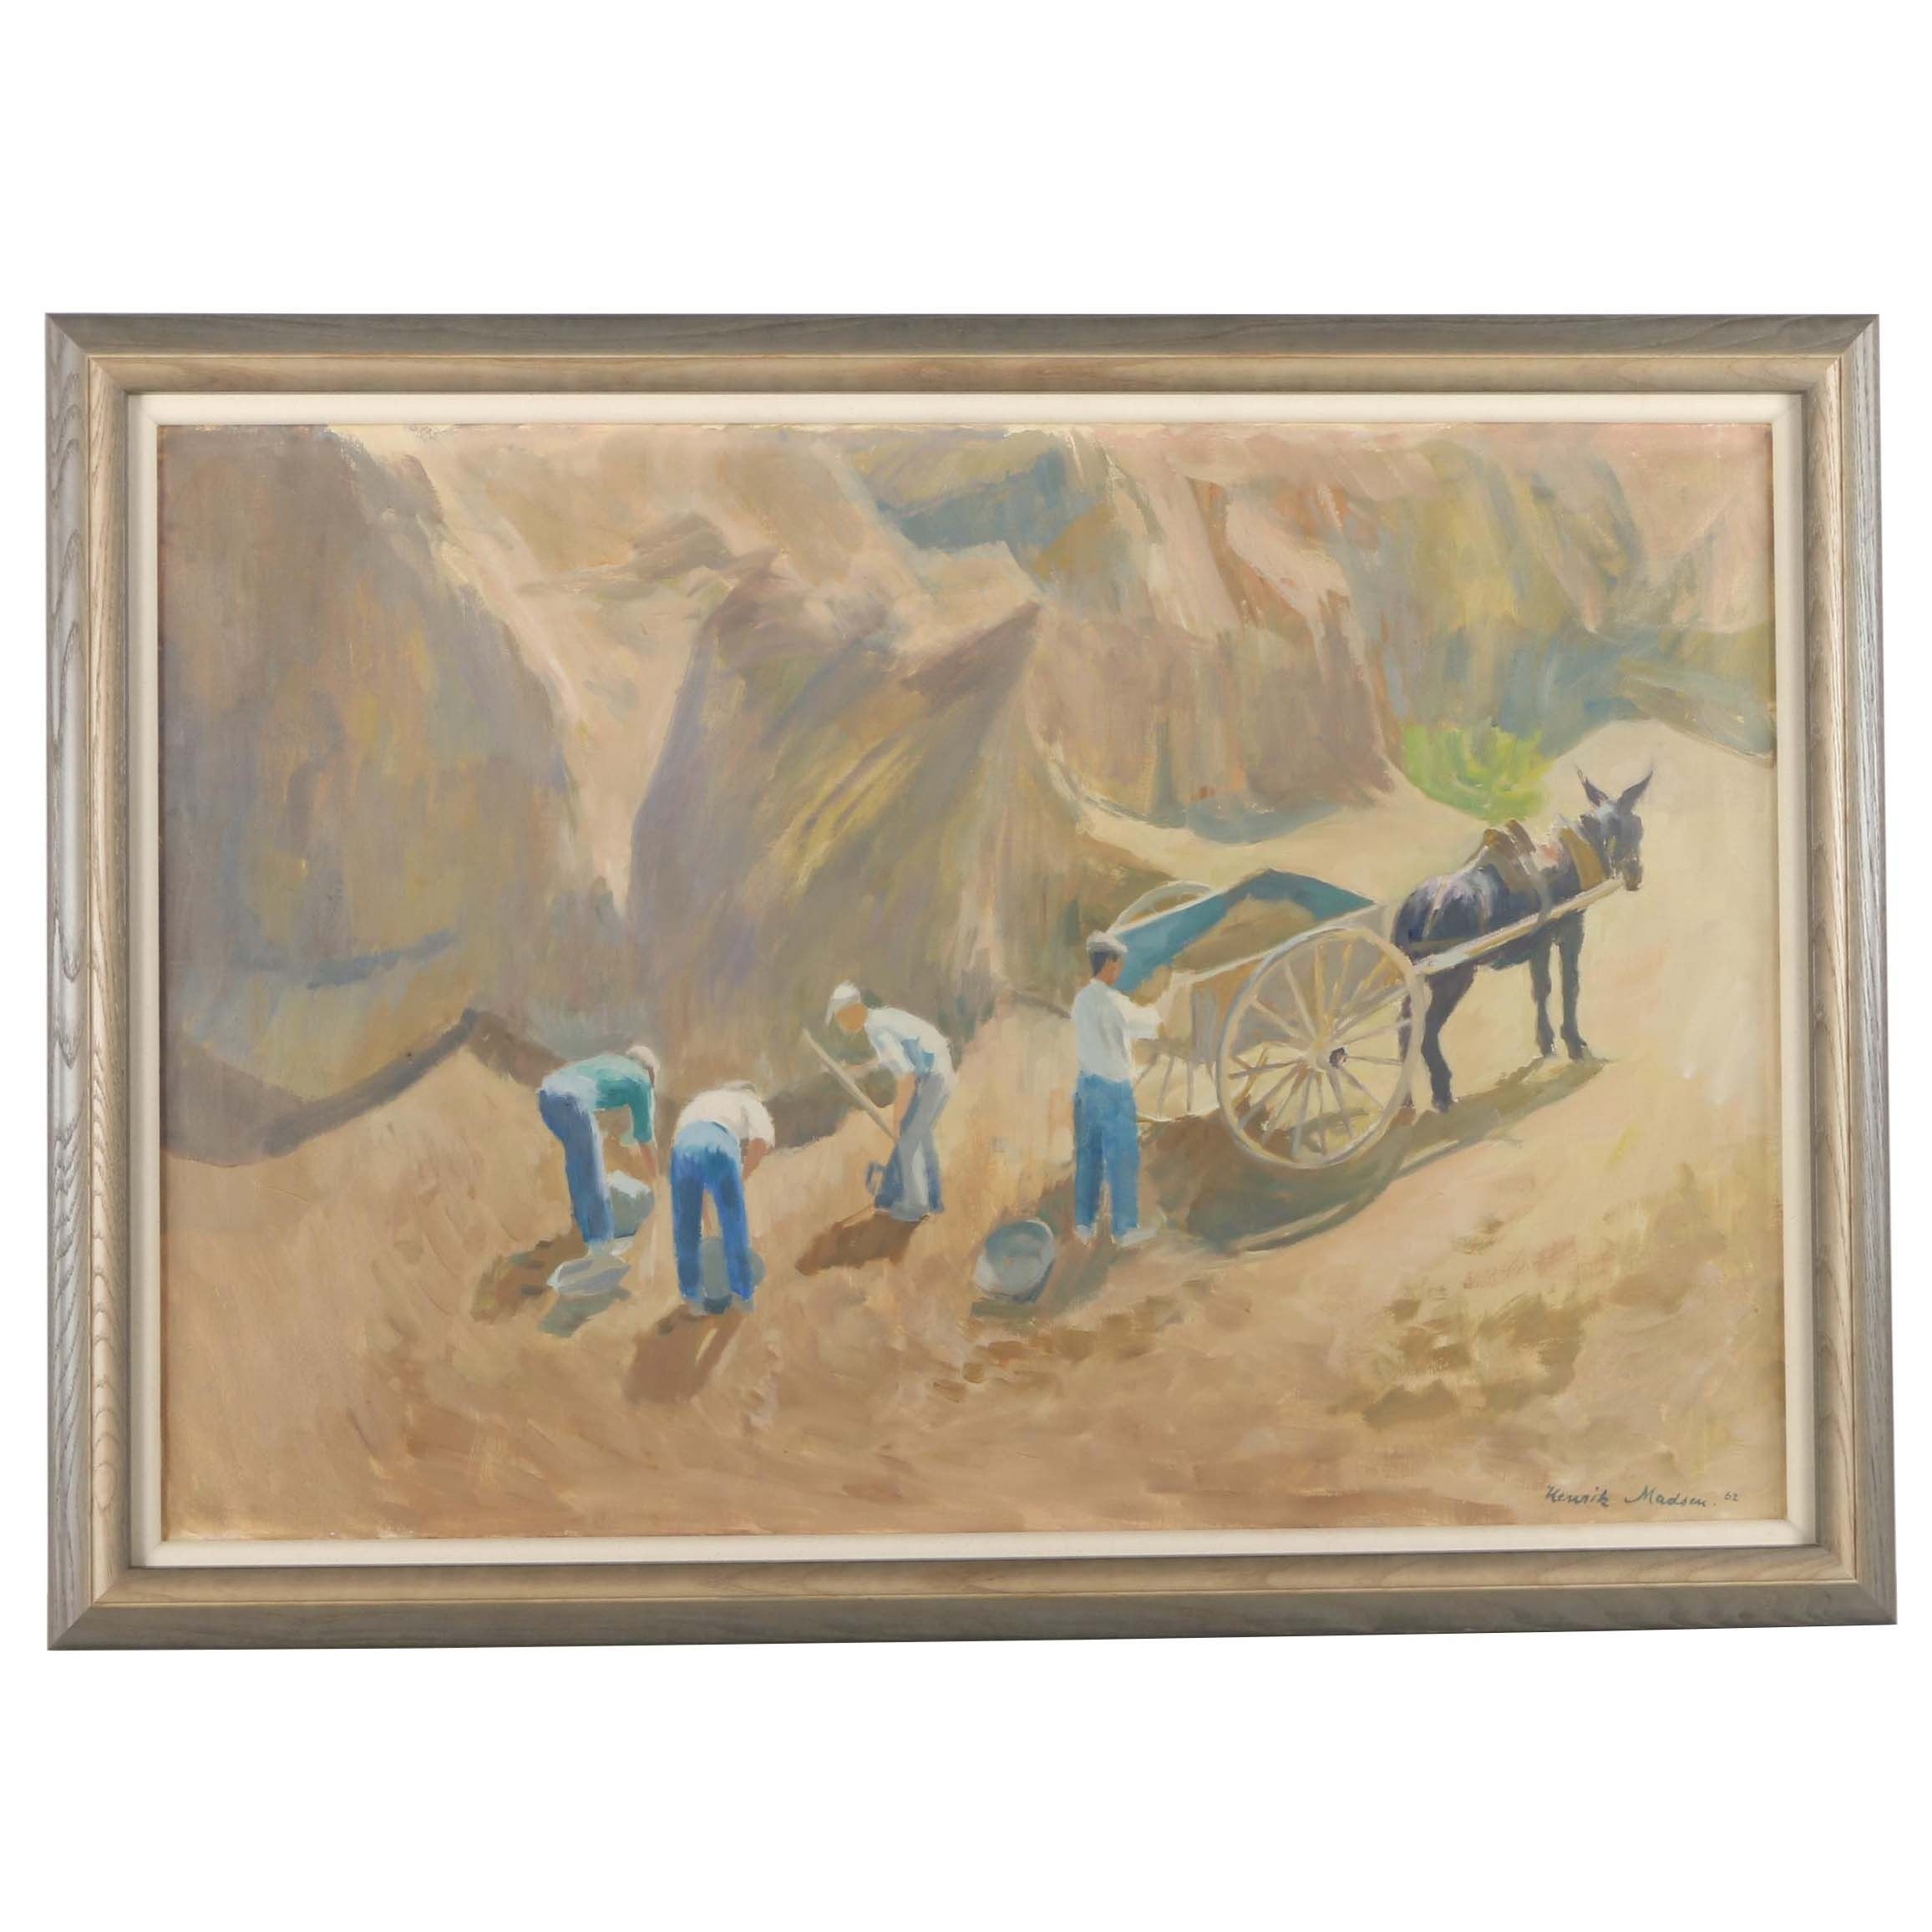 1962 Henrik Madsen Oil Painting on Canvas of Diggers Before a Cliff